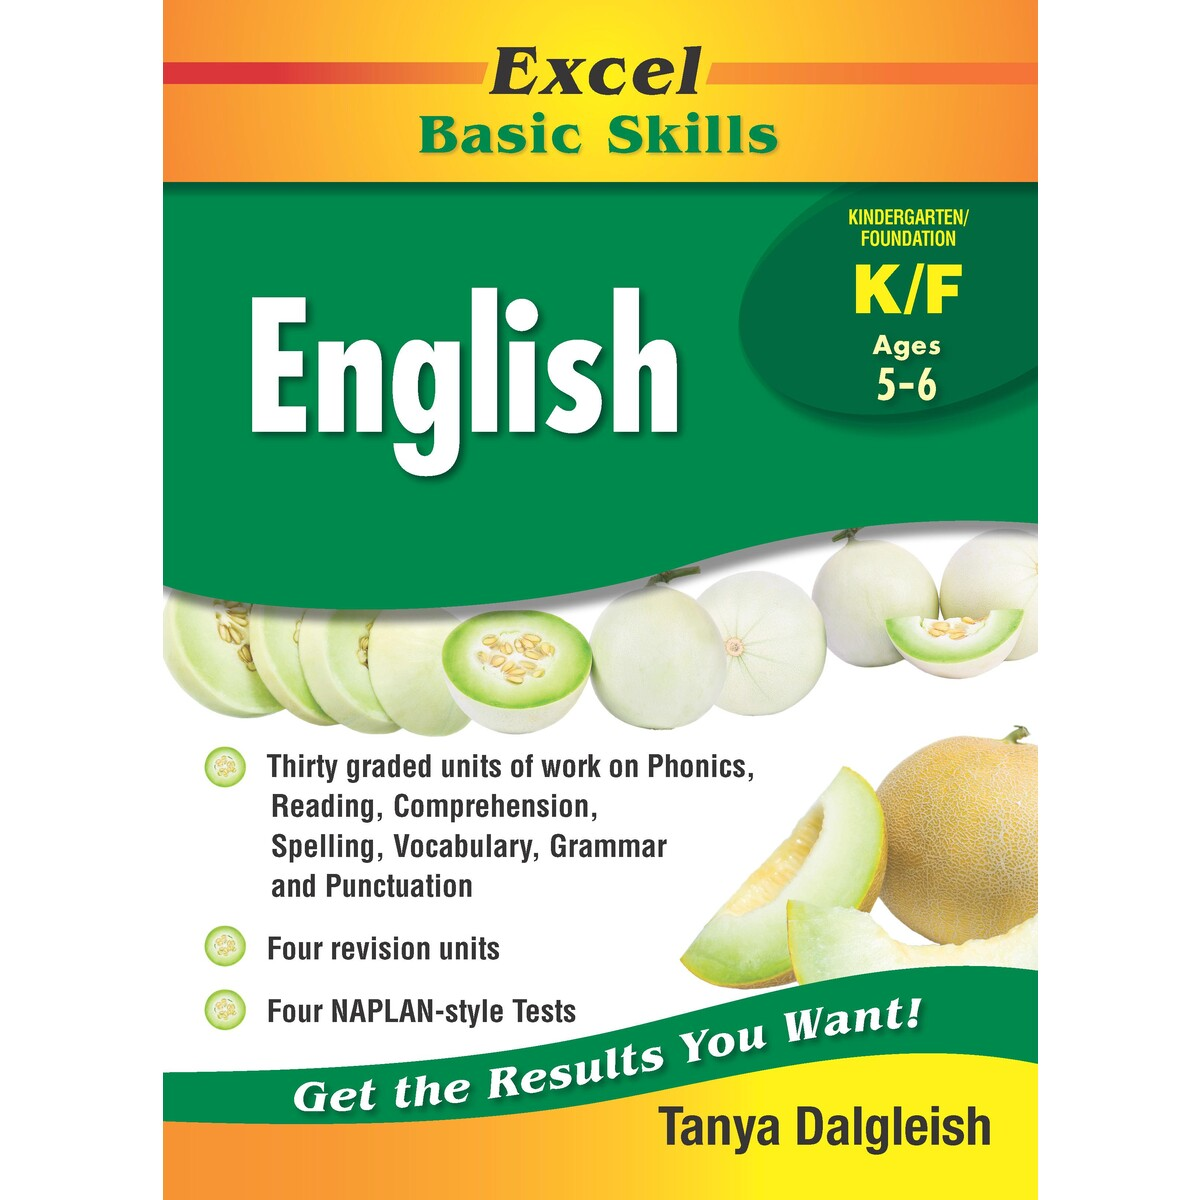 Excel Basic Skills Workbook English Kindergarten